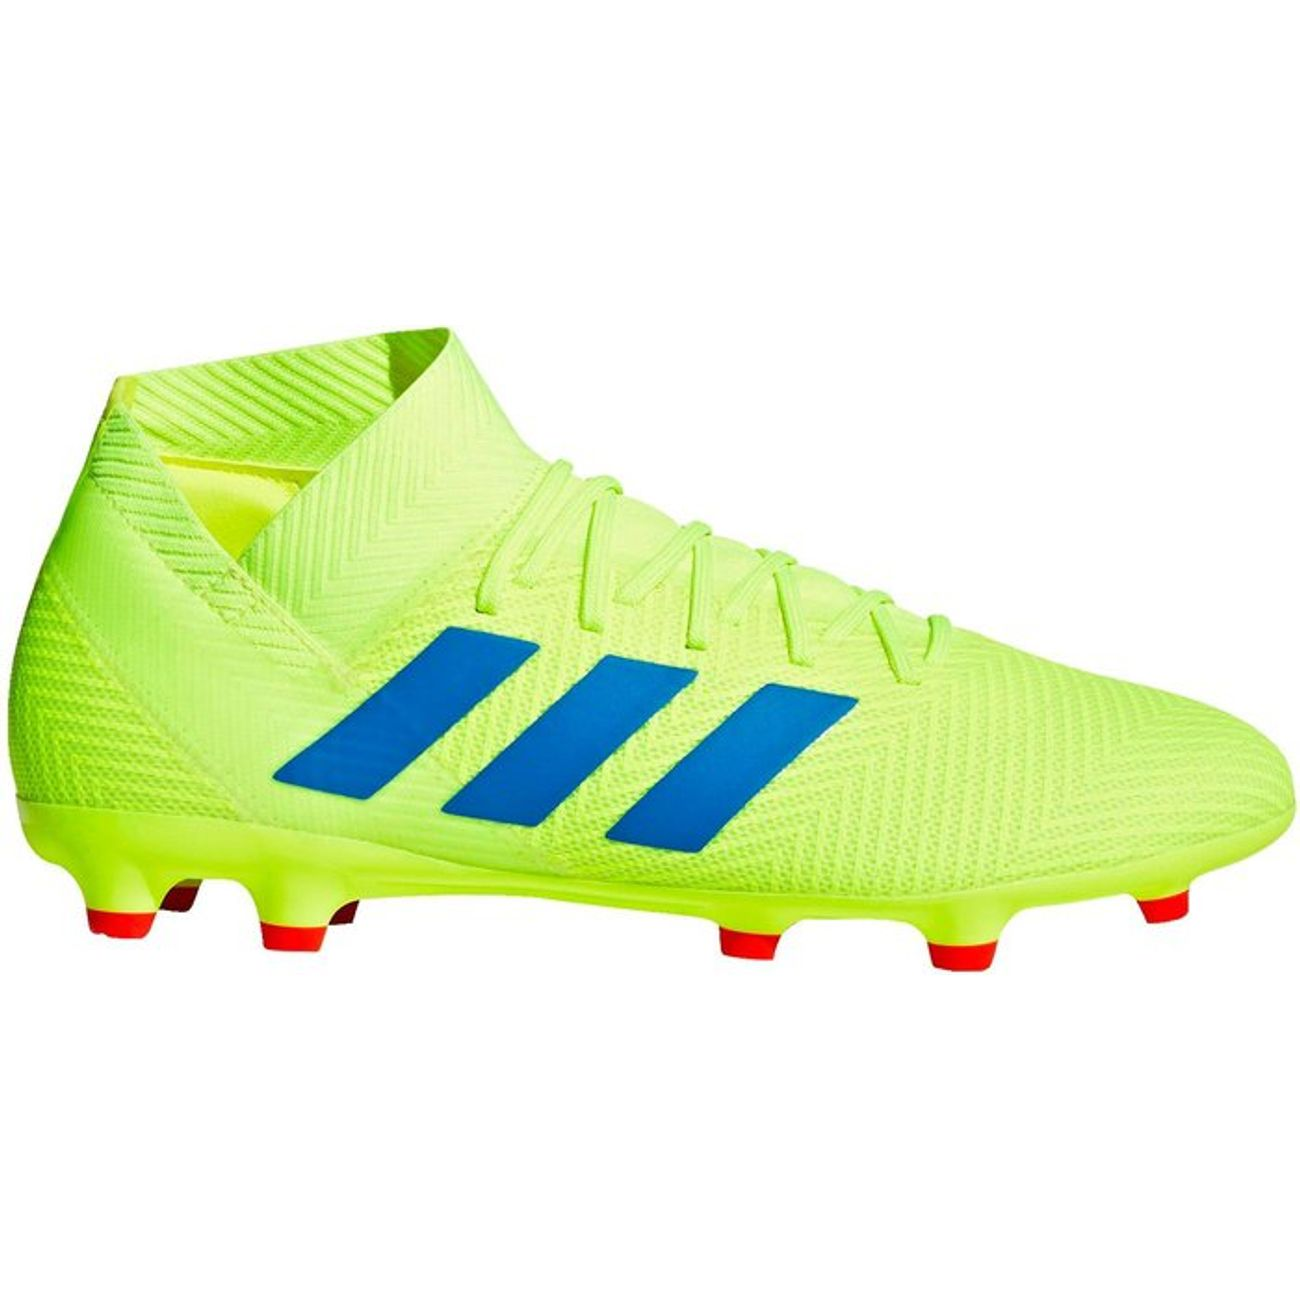 CHAUSSURES BASSES Football homme ADIDAS 18.3 FG